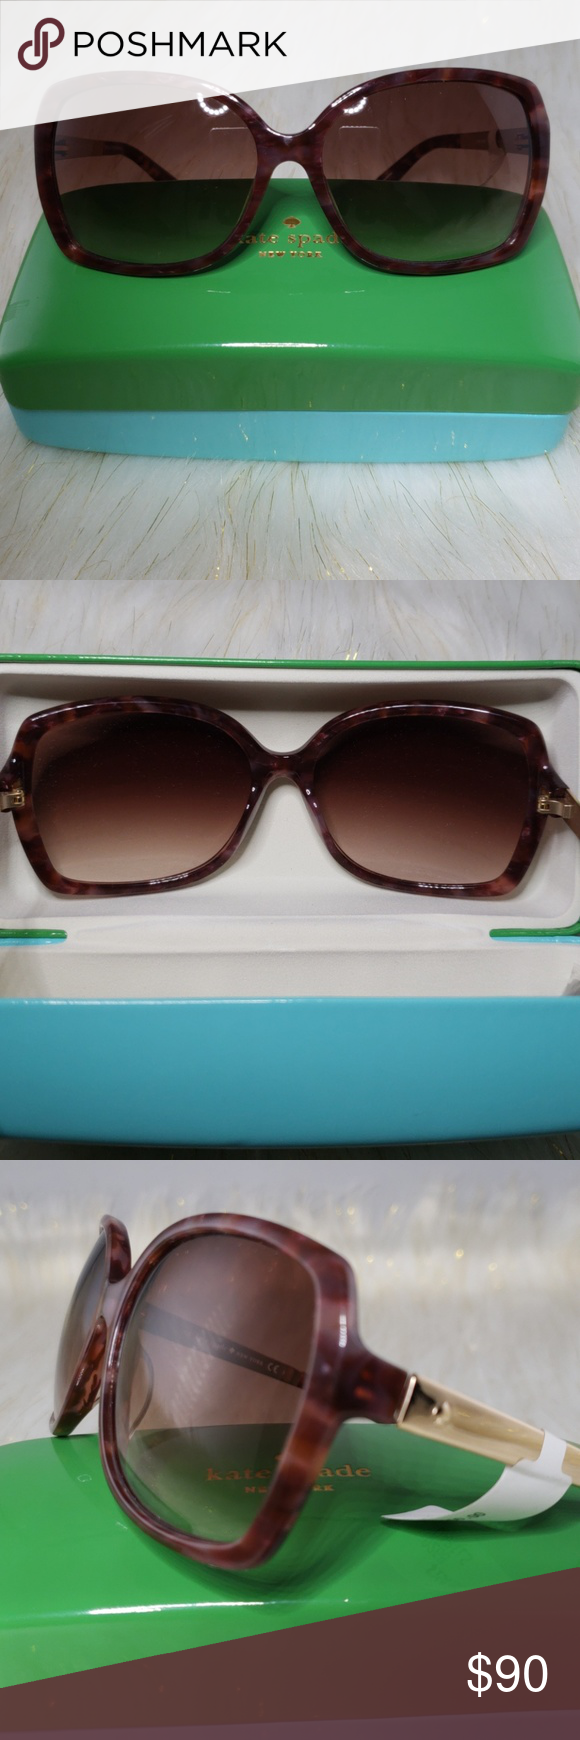 10a6dedd3d Kate Spade Darilynn Sunglasses Hard case and cleaning cloth included. Square  frame. Non-polarized lenses. Imported